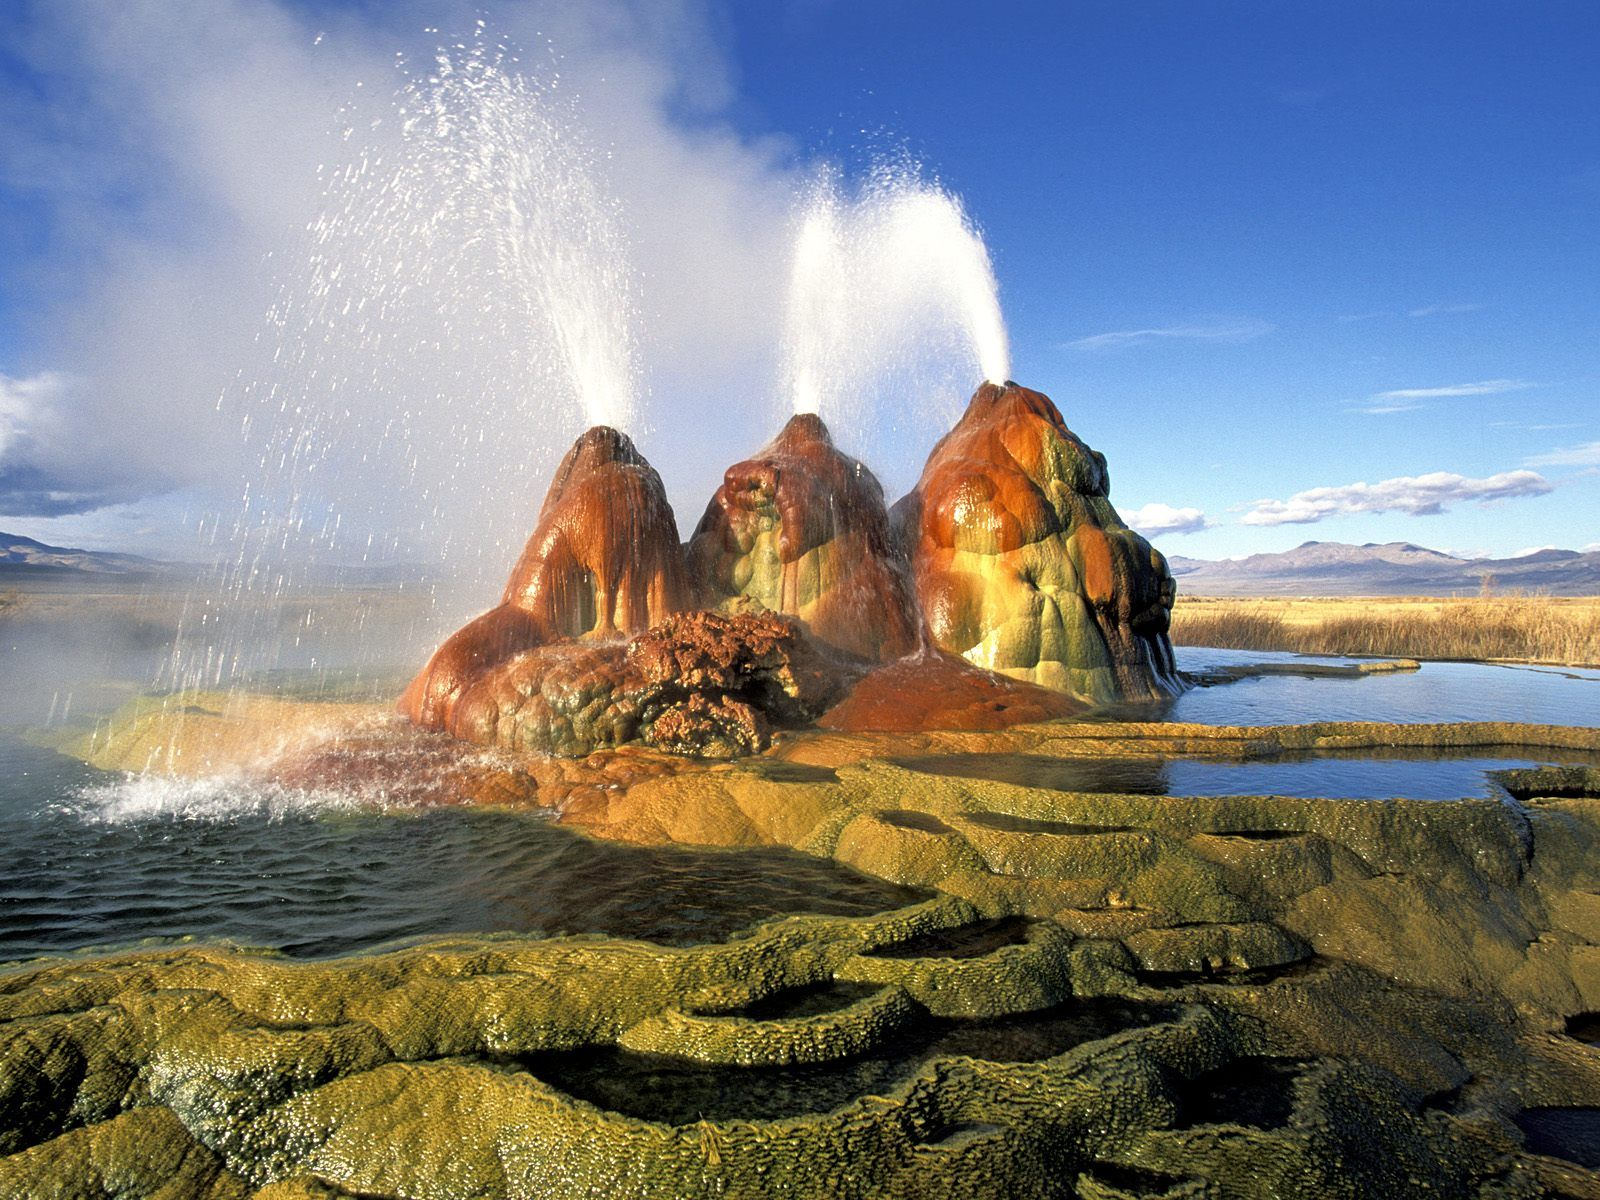 fly_geyser__black_rock_desert__nevada.jpg (1600×1200)